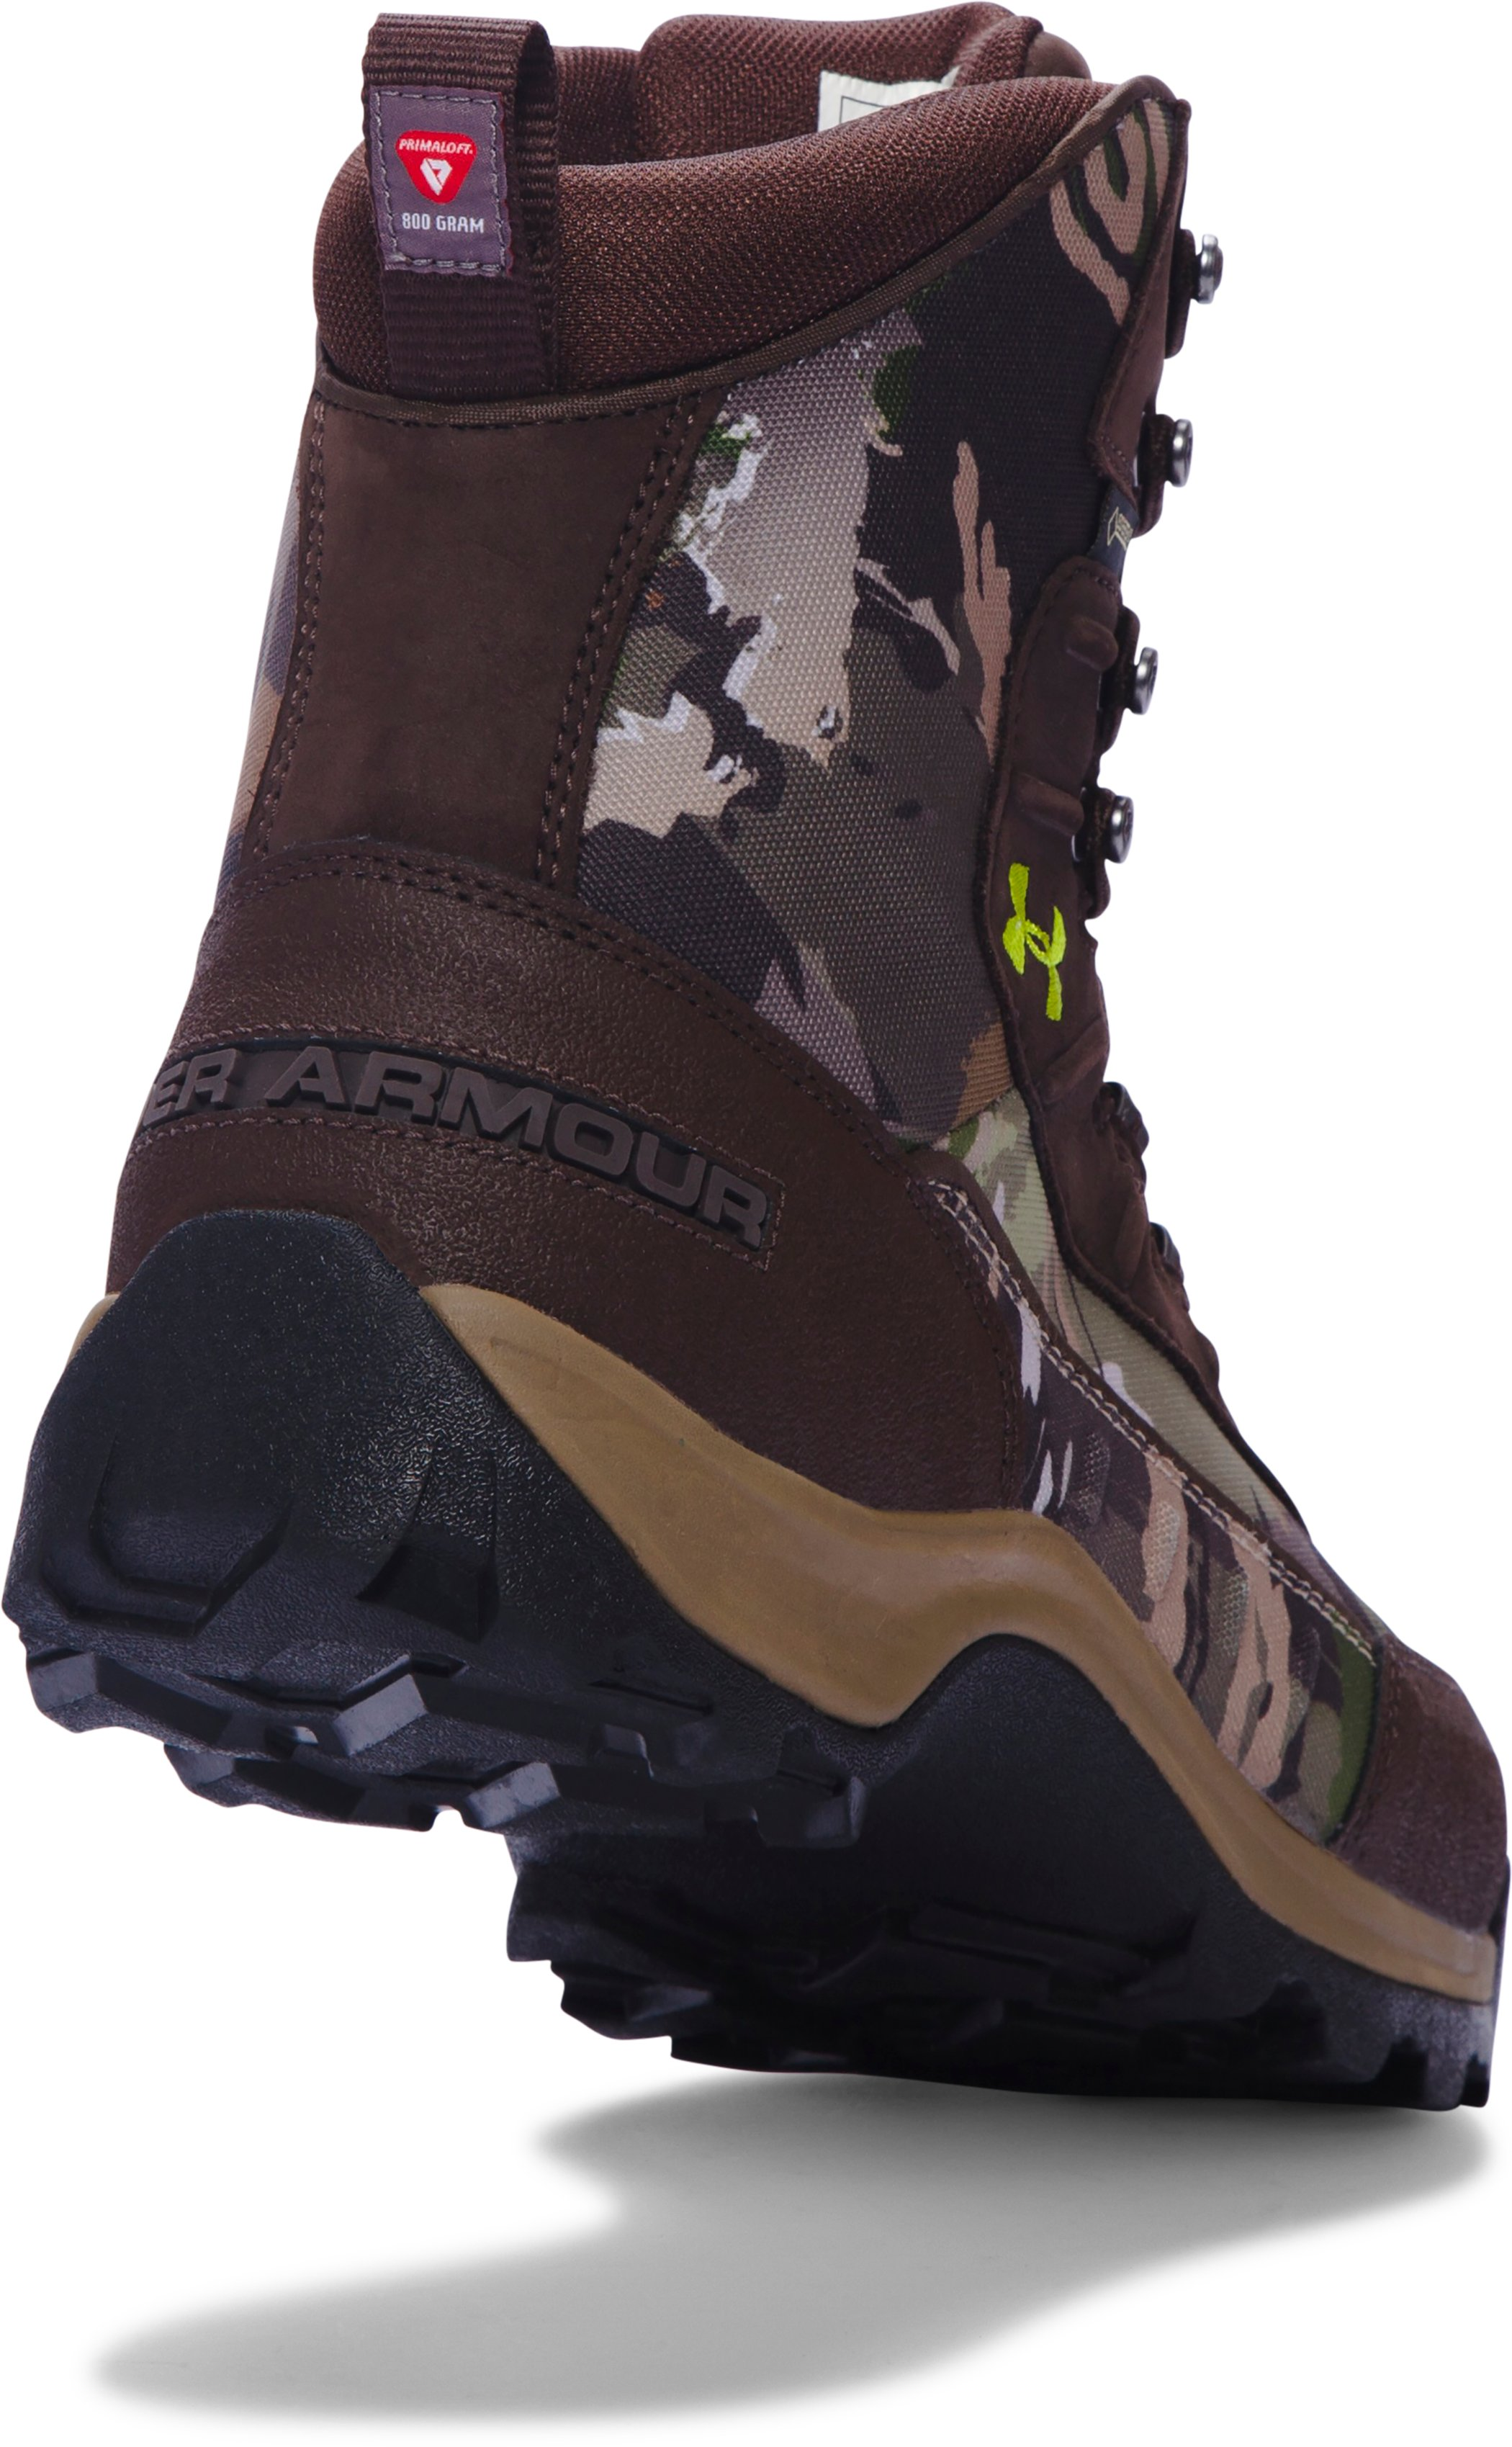 Men's UA Brow Tine Hunting Boots – 800g, RIDGE REAPER® FOREST